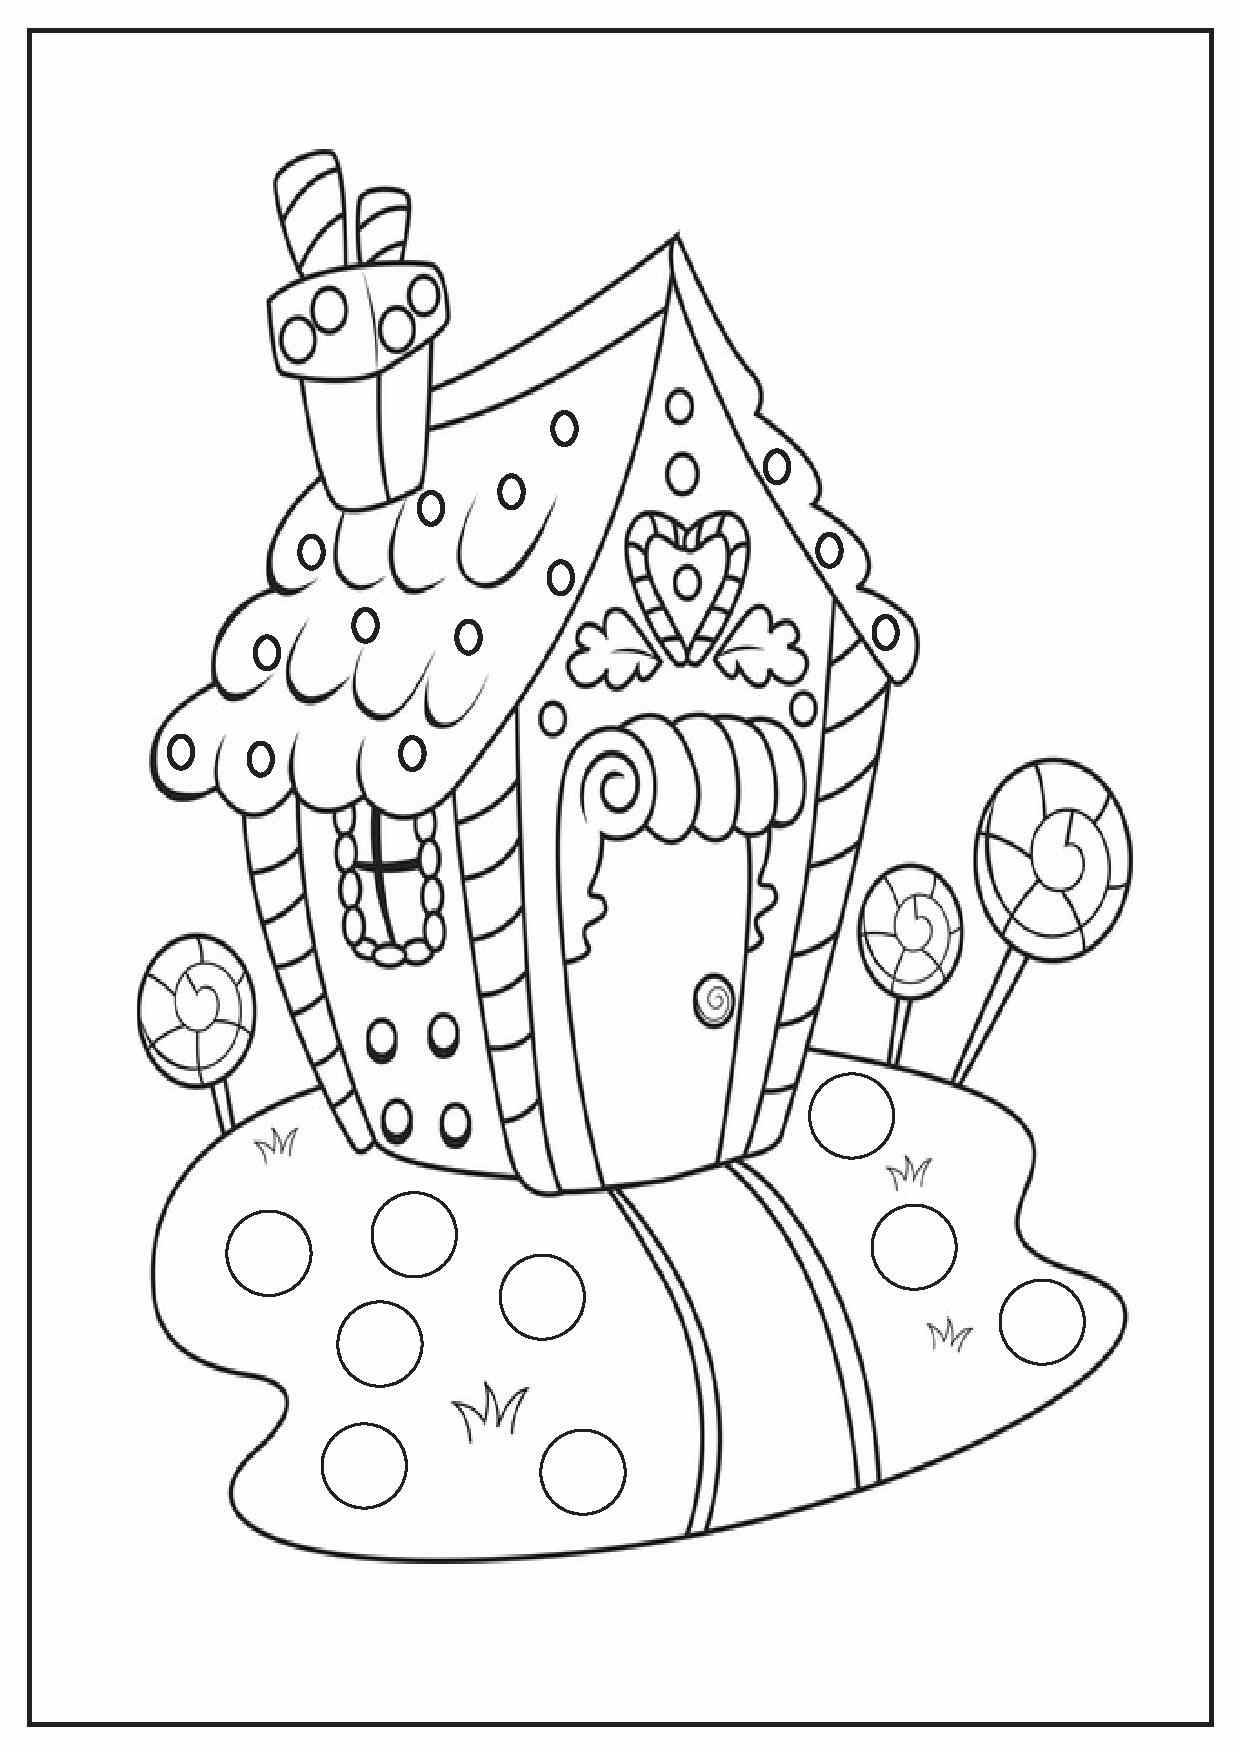 Christmas Coloring Pages For 2 Year Olds With Printable